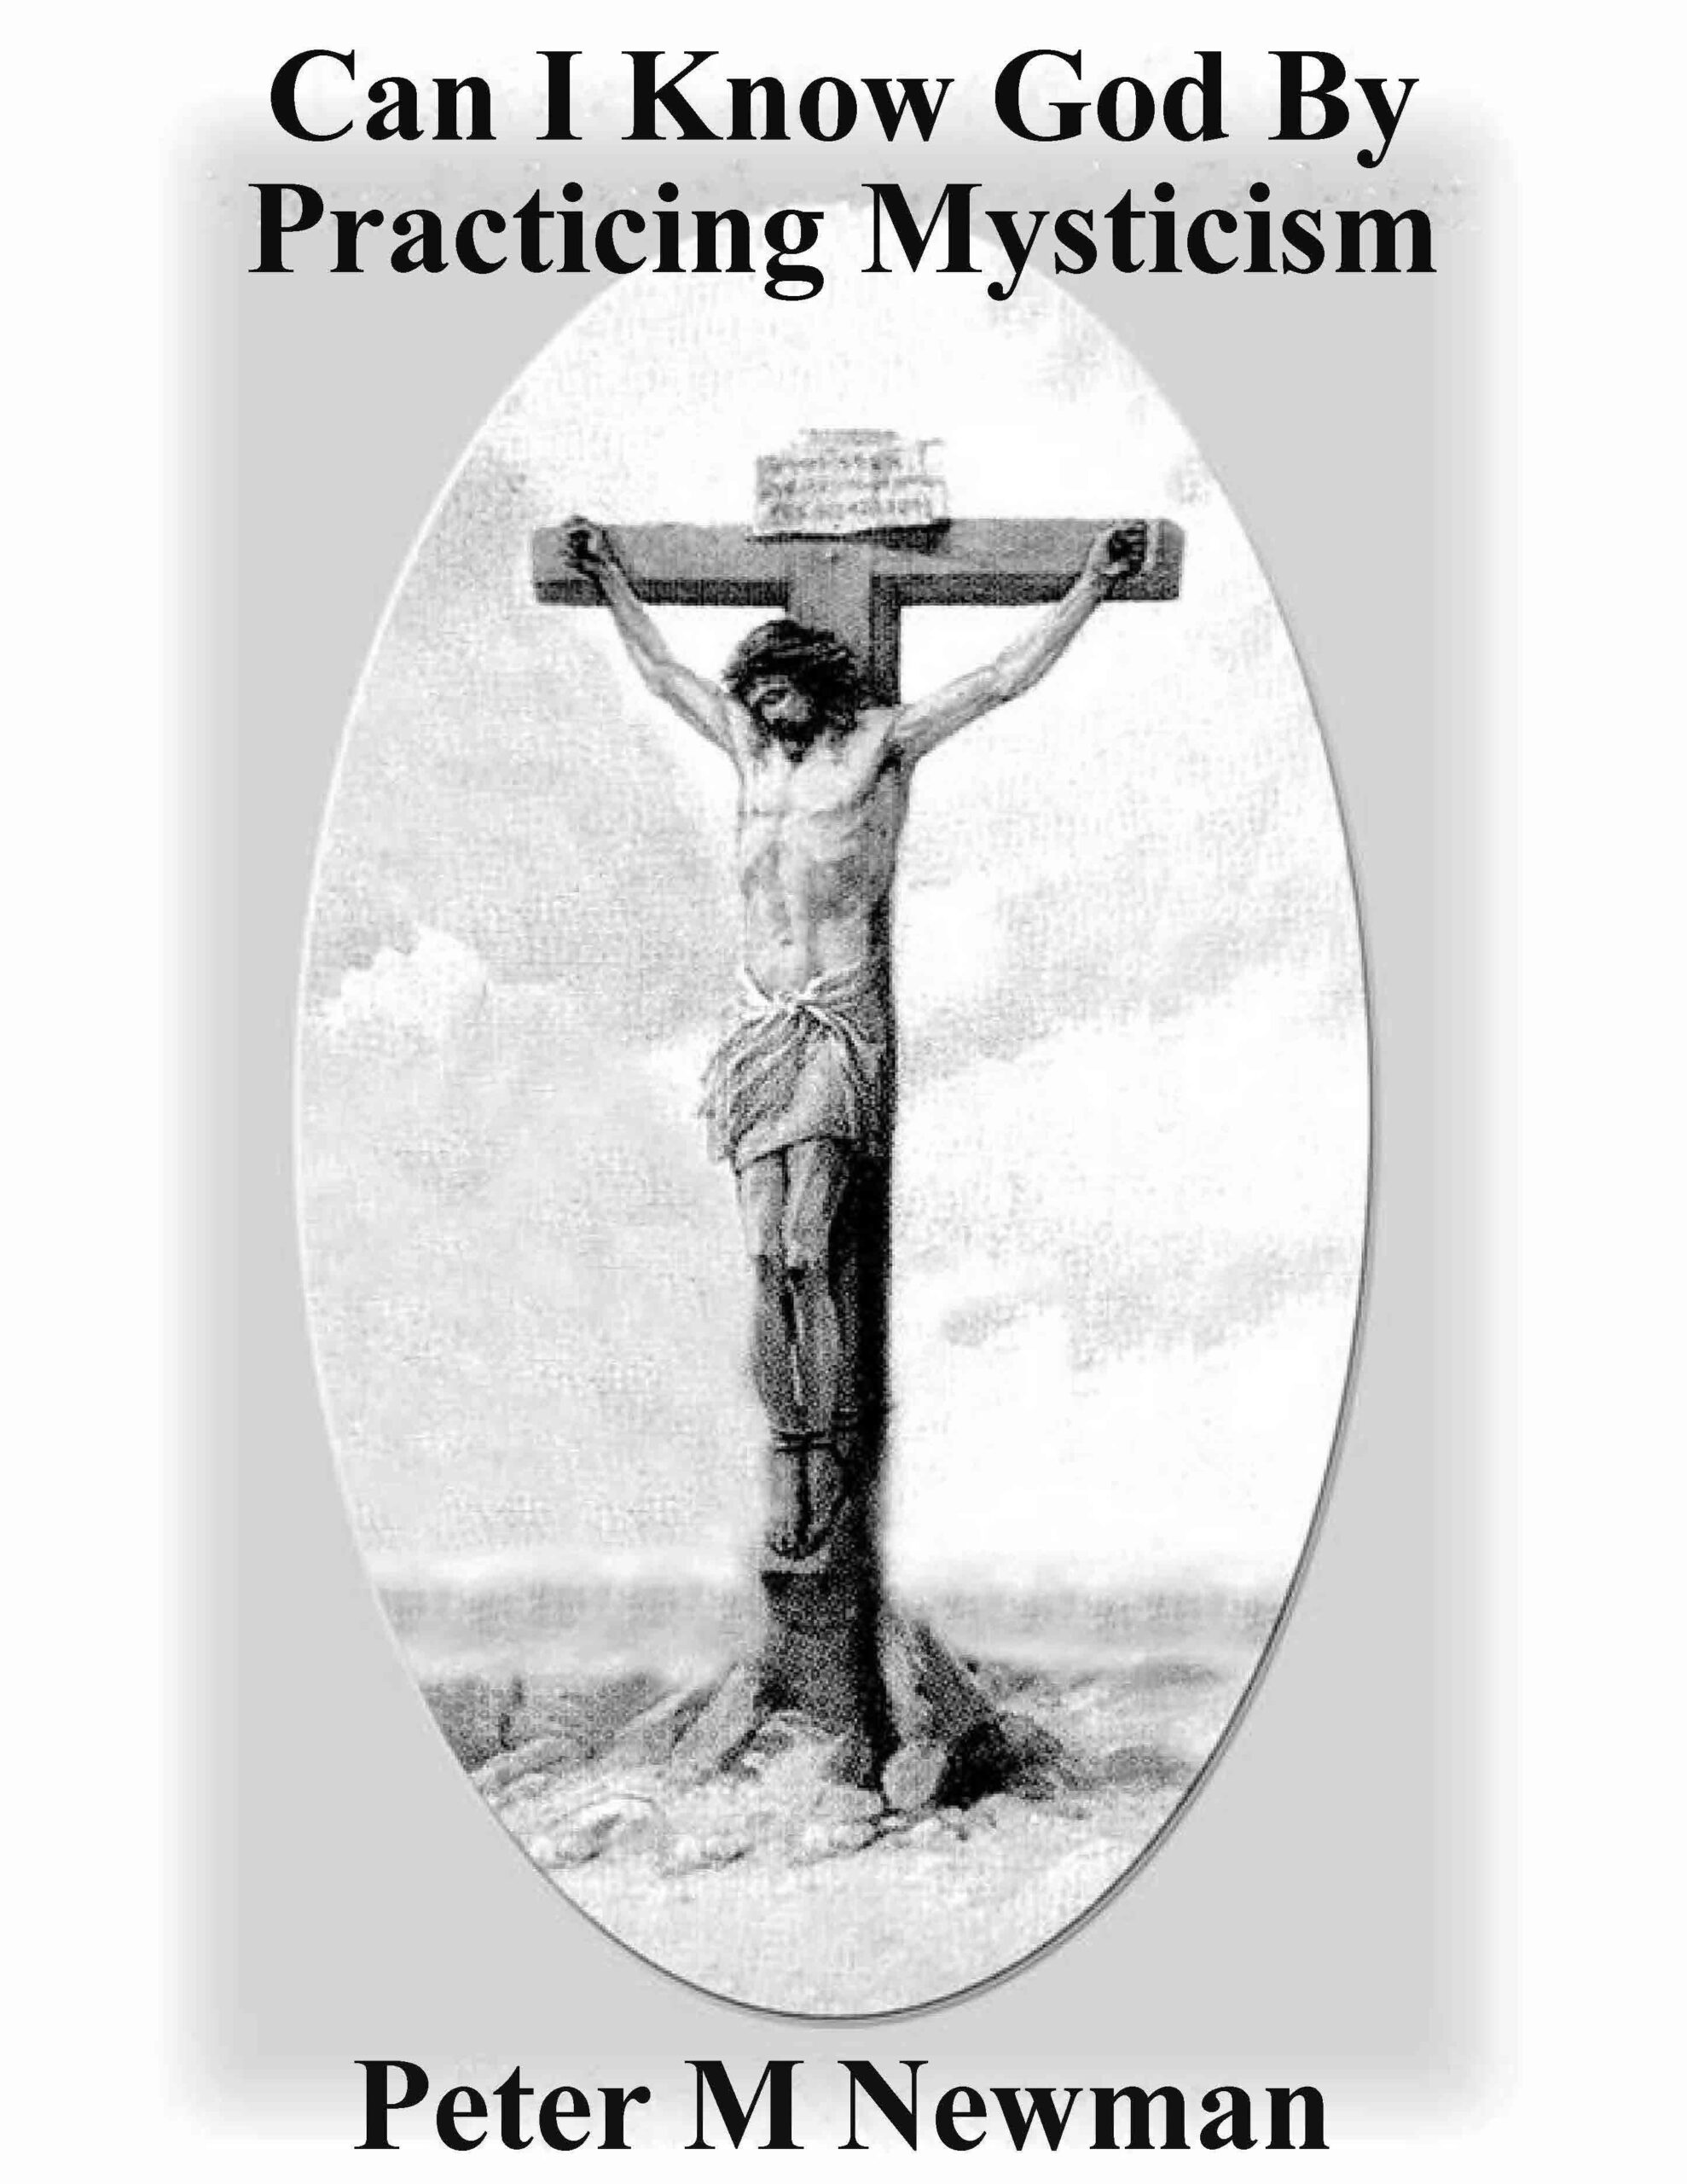 Can I Know God by Practicing Mysticism?